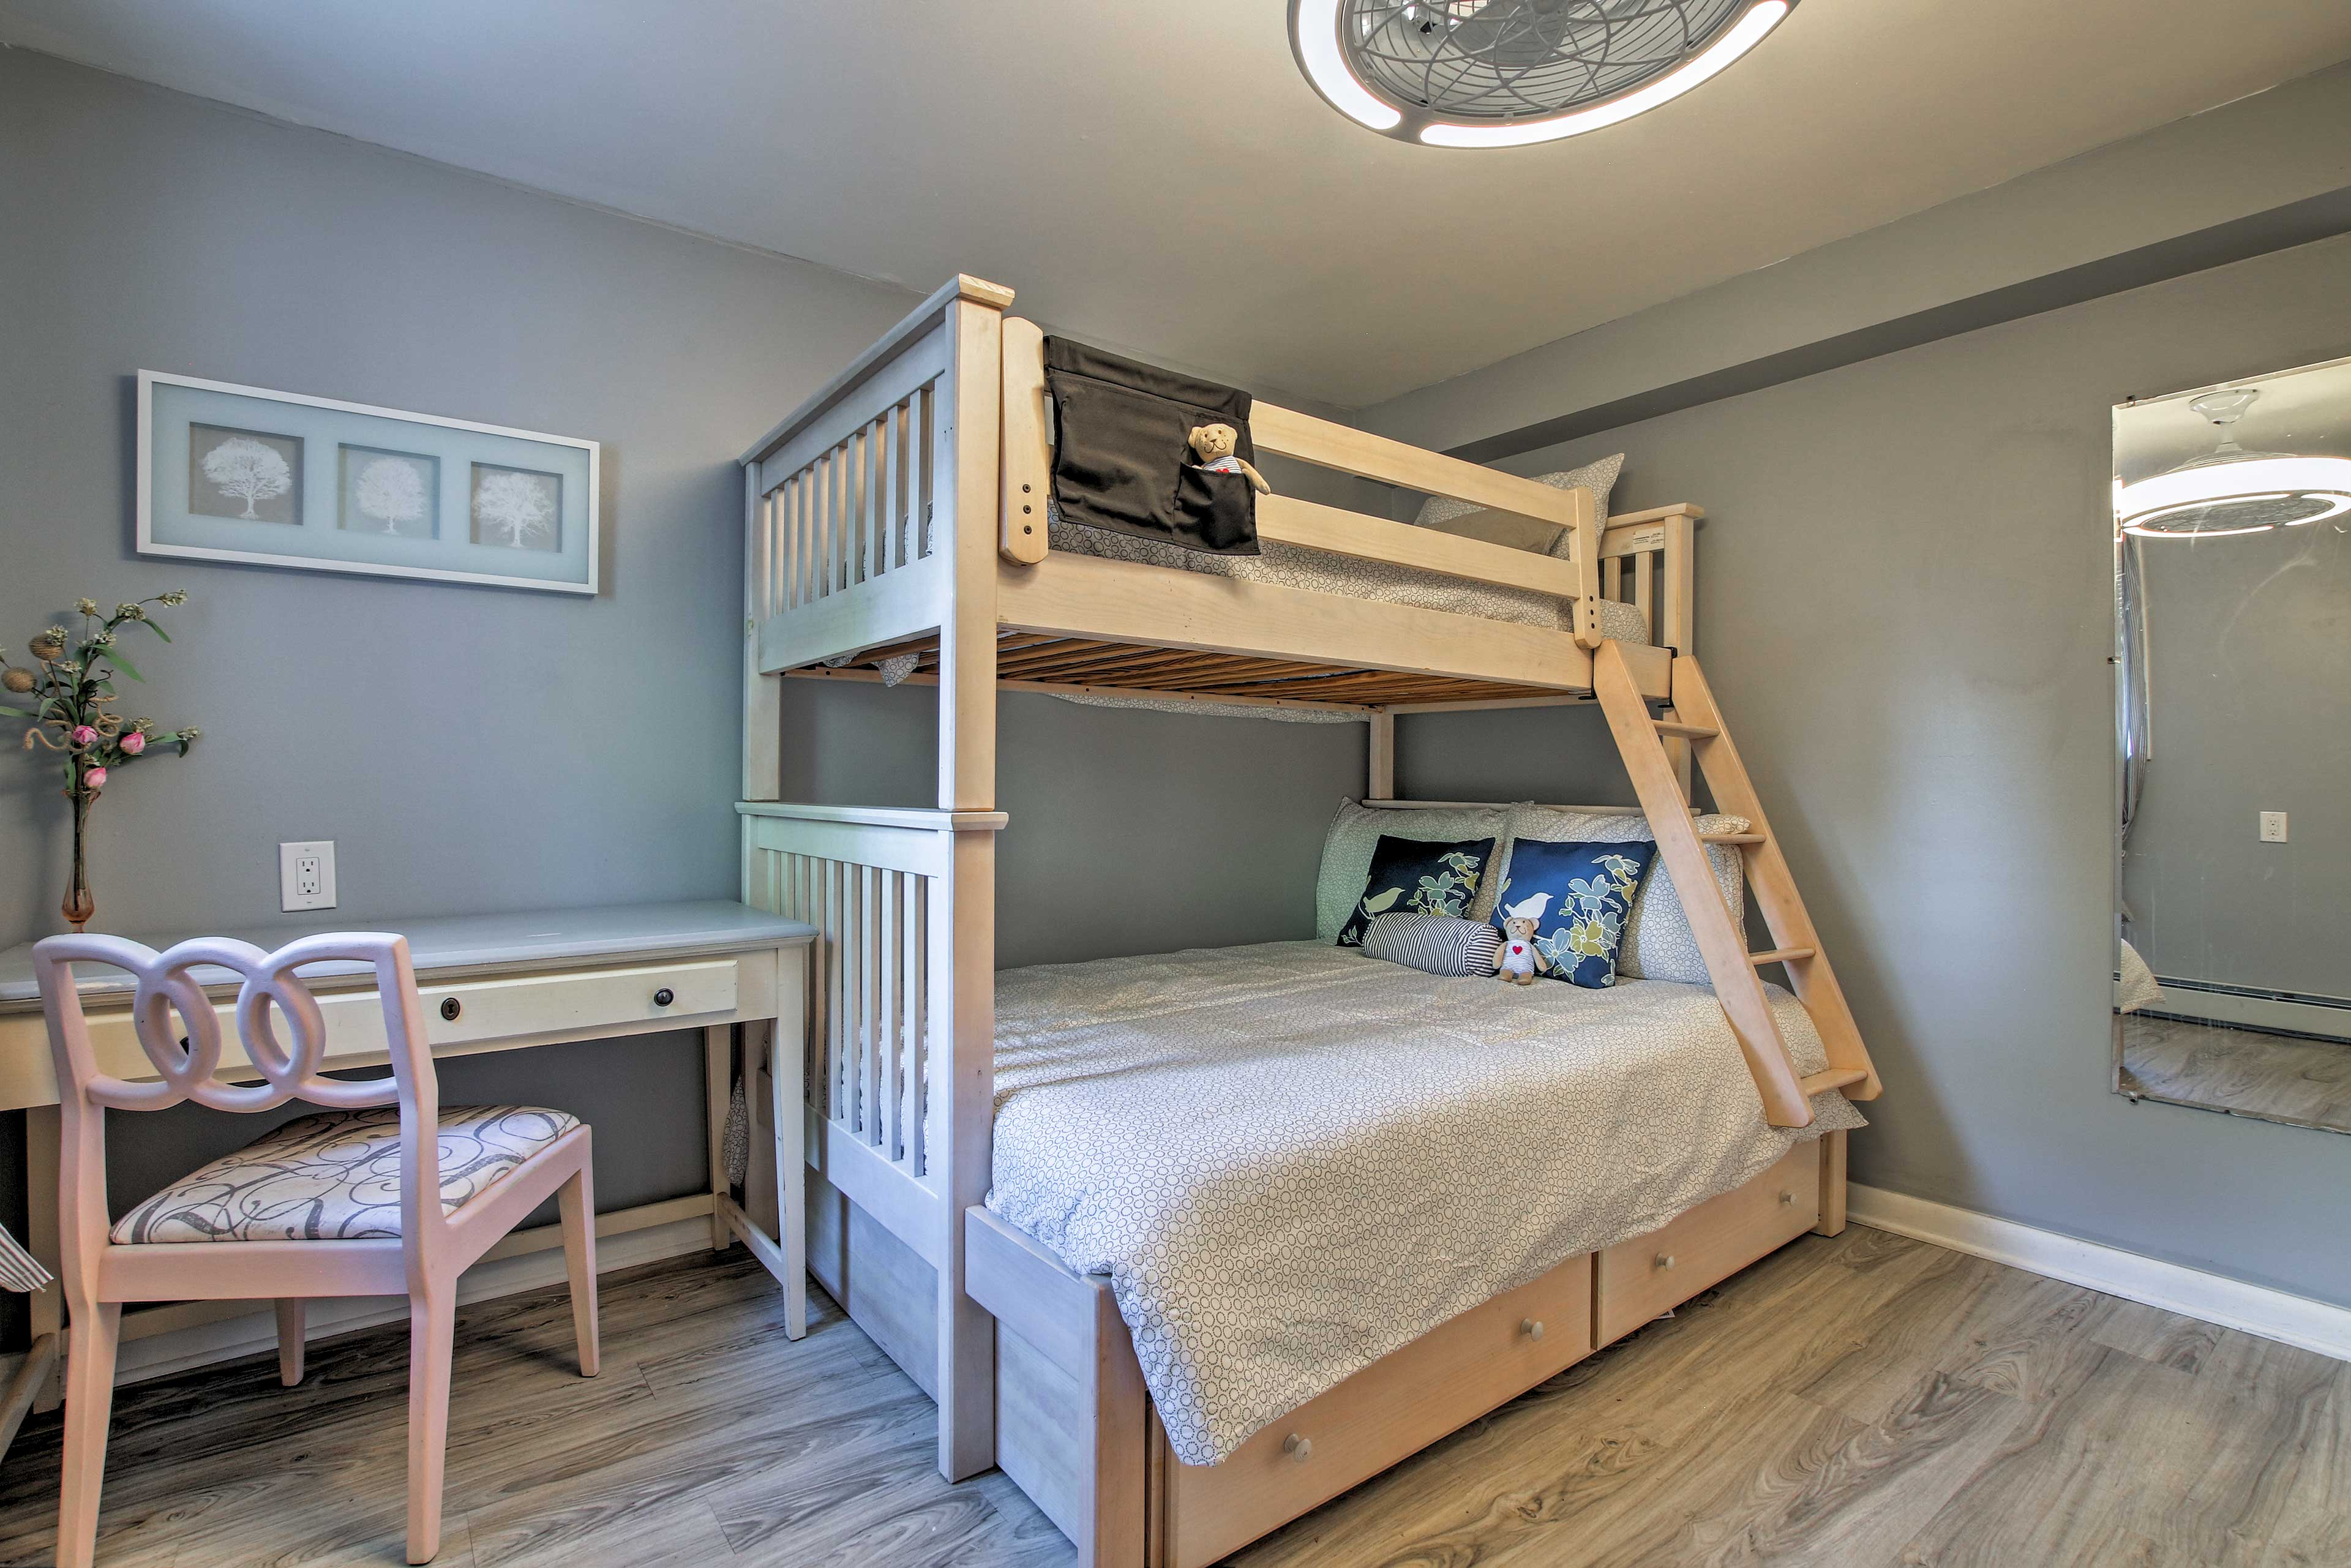 With a twin bunk bed, this room sleeps 2.